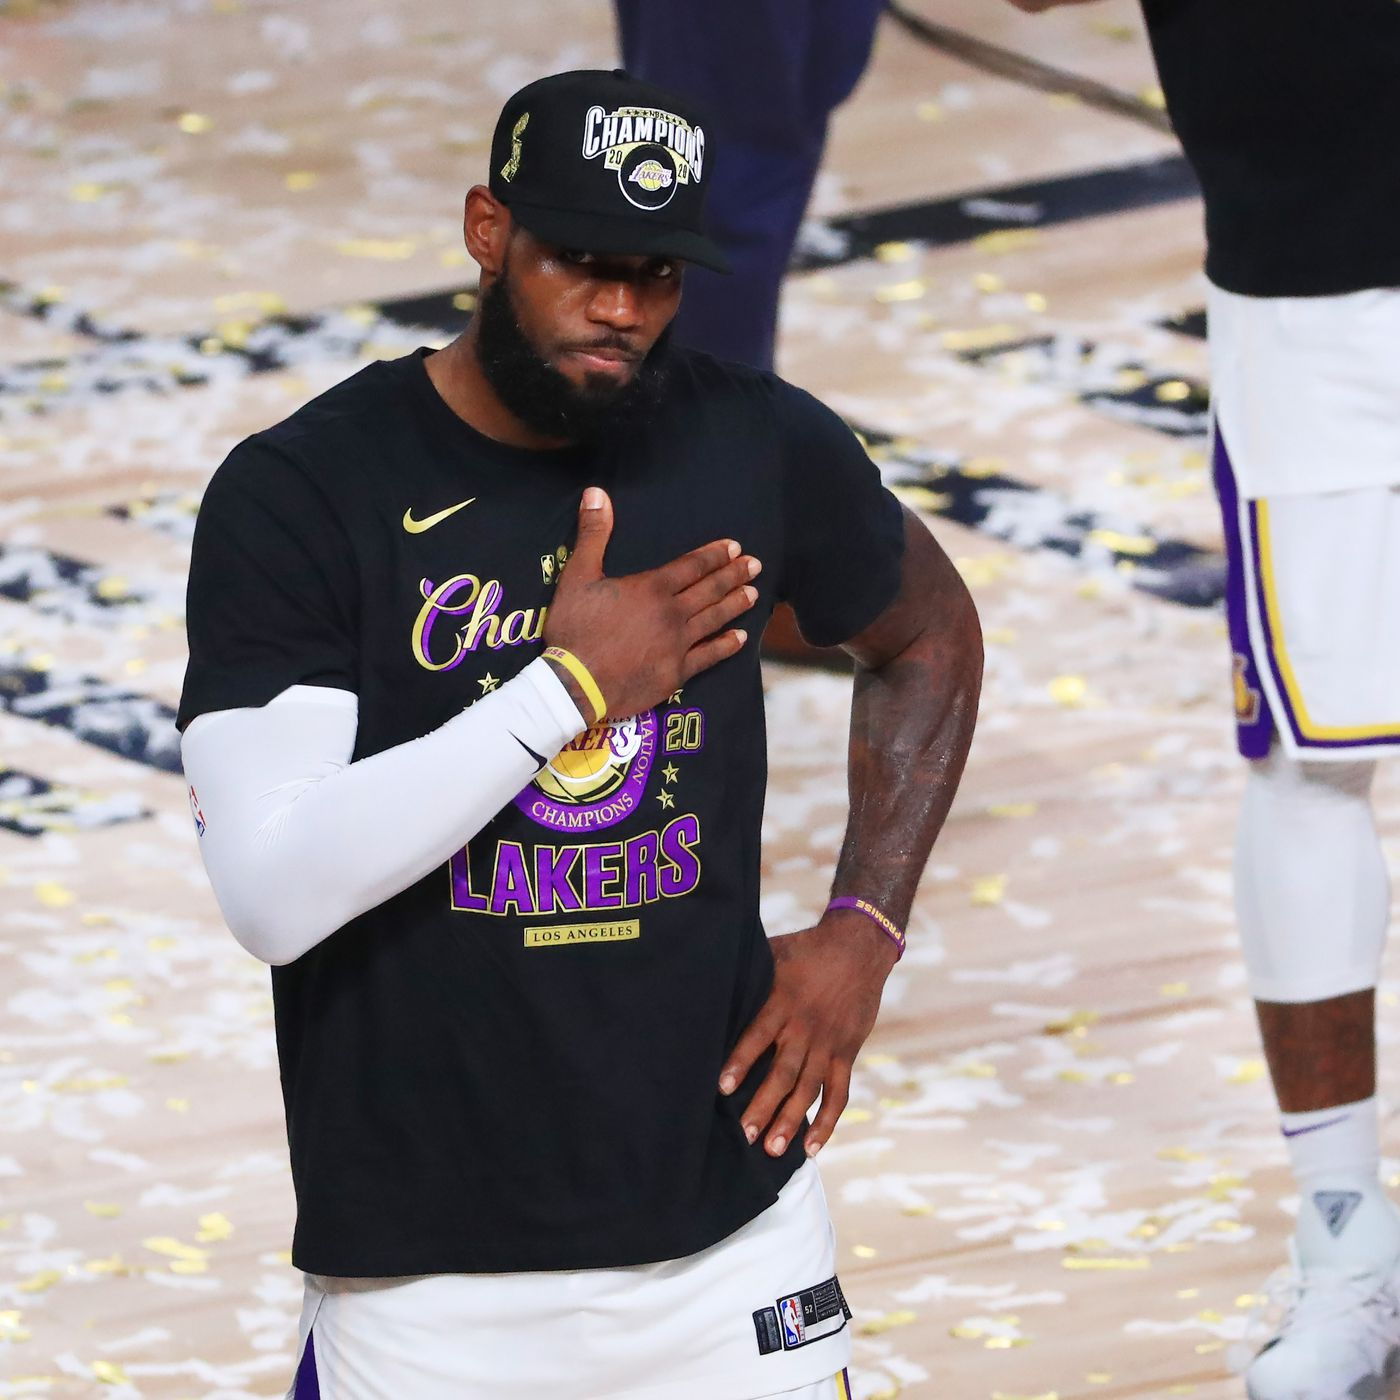 2020 Nba Finals Mvp Lebron James Takes Home Award After Lakers Beat Heat In Game 6 Draftkings Nation